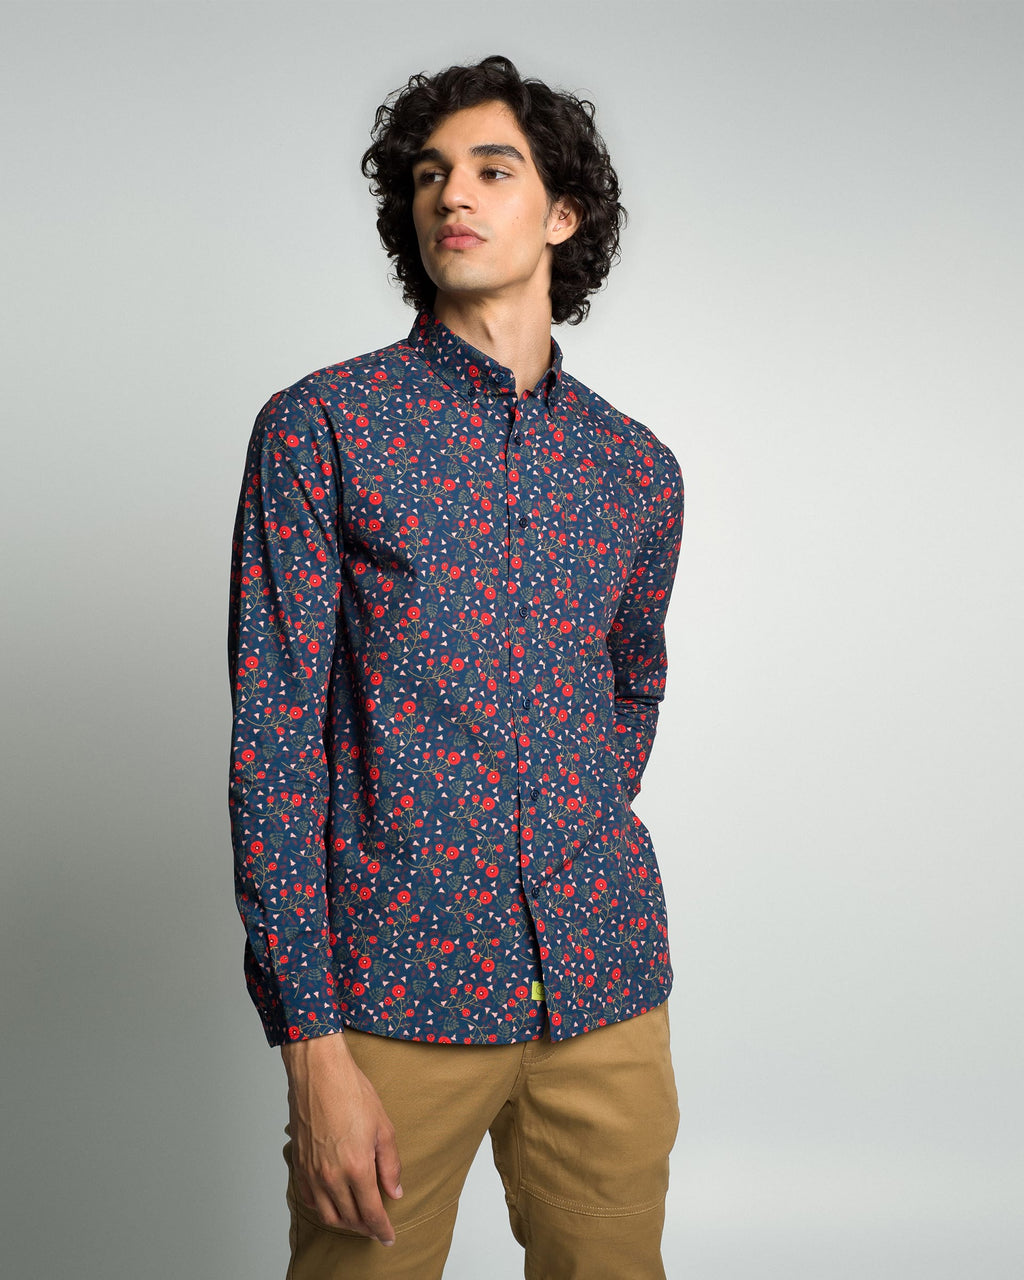 Poplin & Co. - Long Sleeve Shirt - Navy Floral Forest - Guys